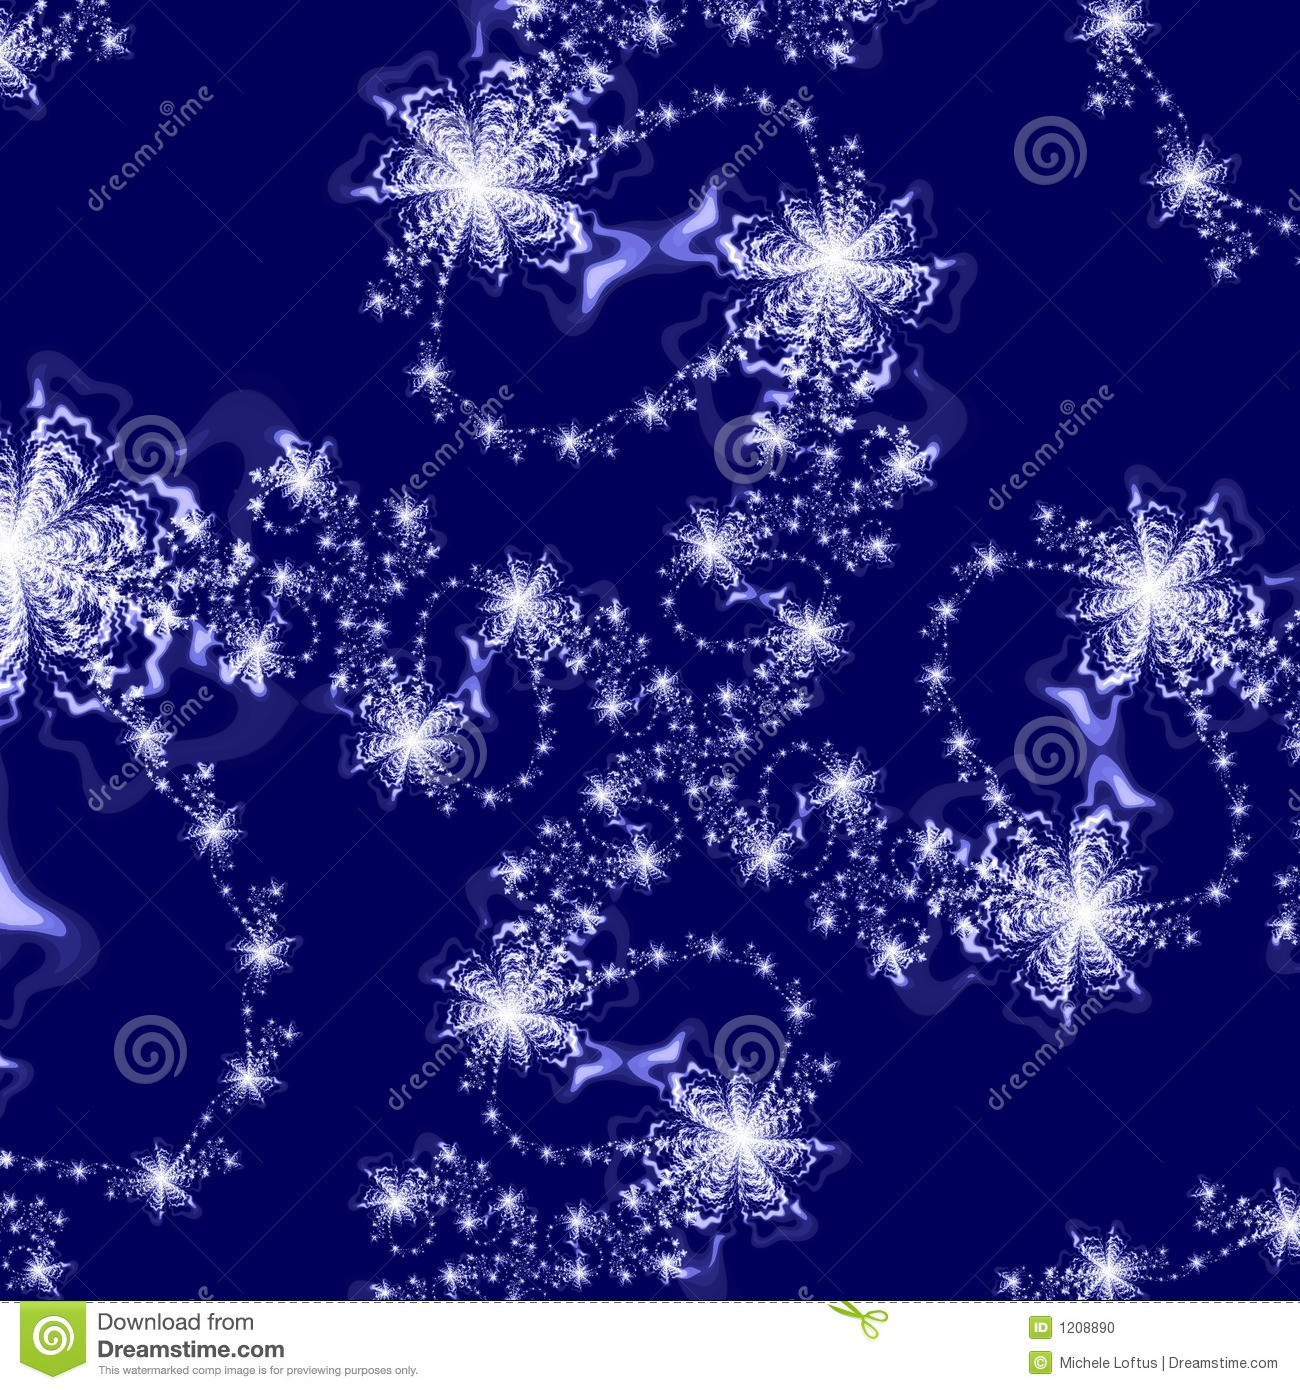 abstract background pattern of silver stars on dark blue. Black Bedroom Furniture Sets. Home Design Ideas